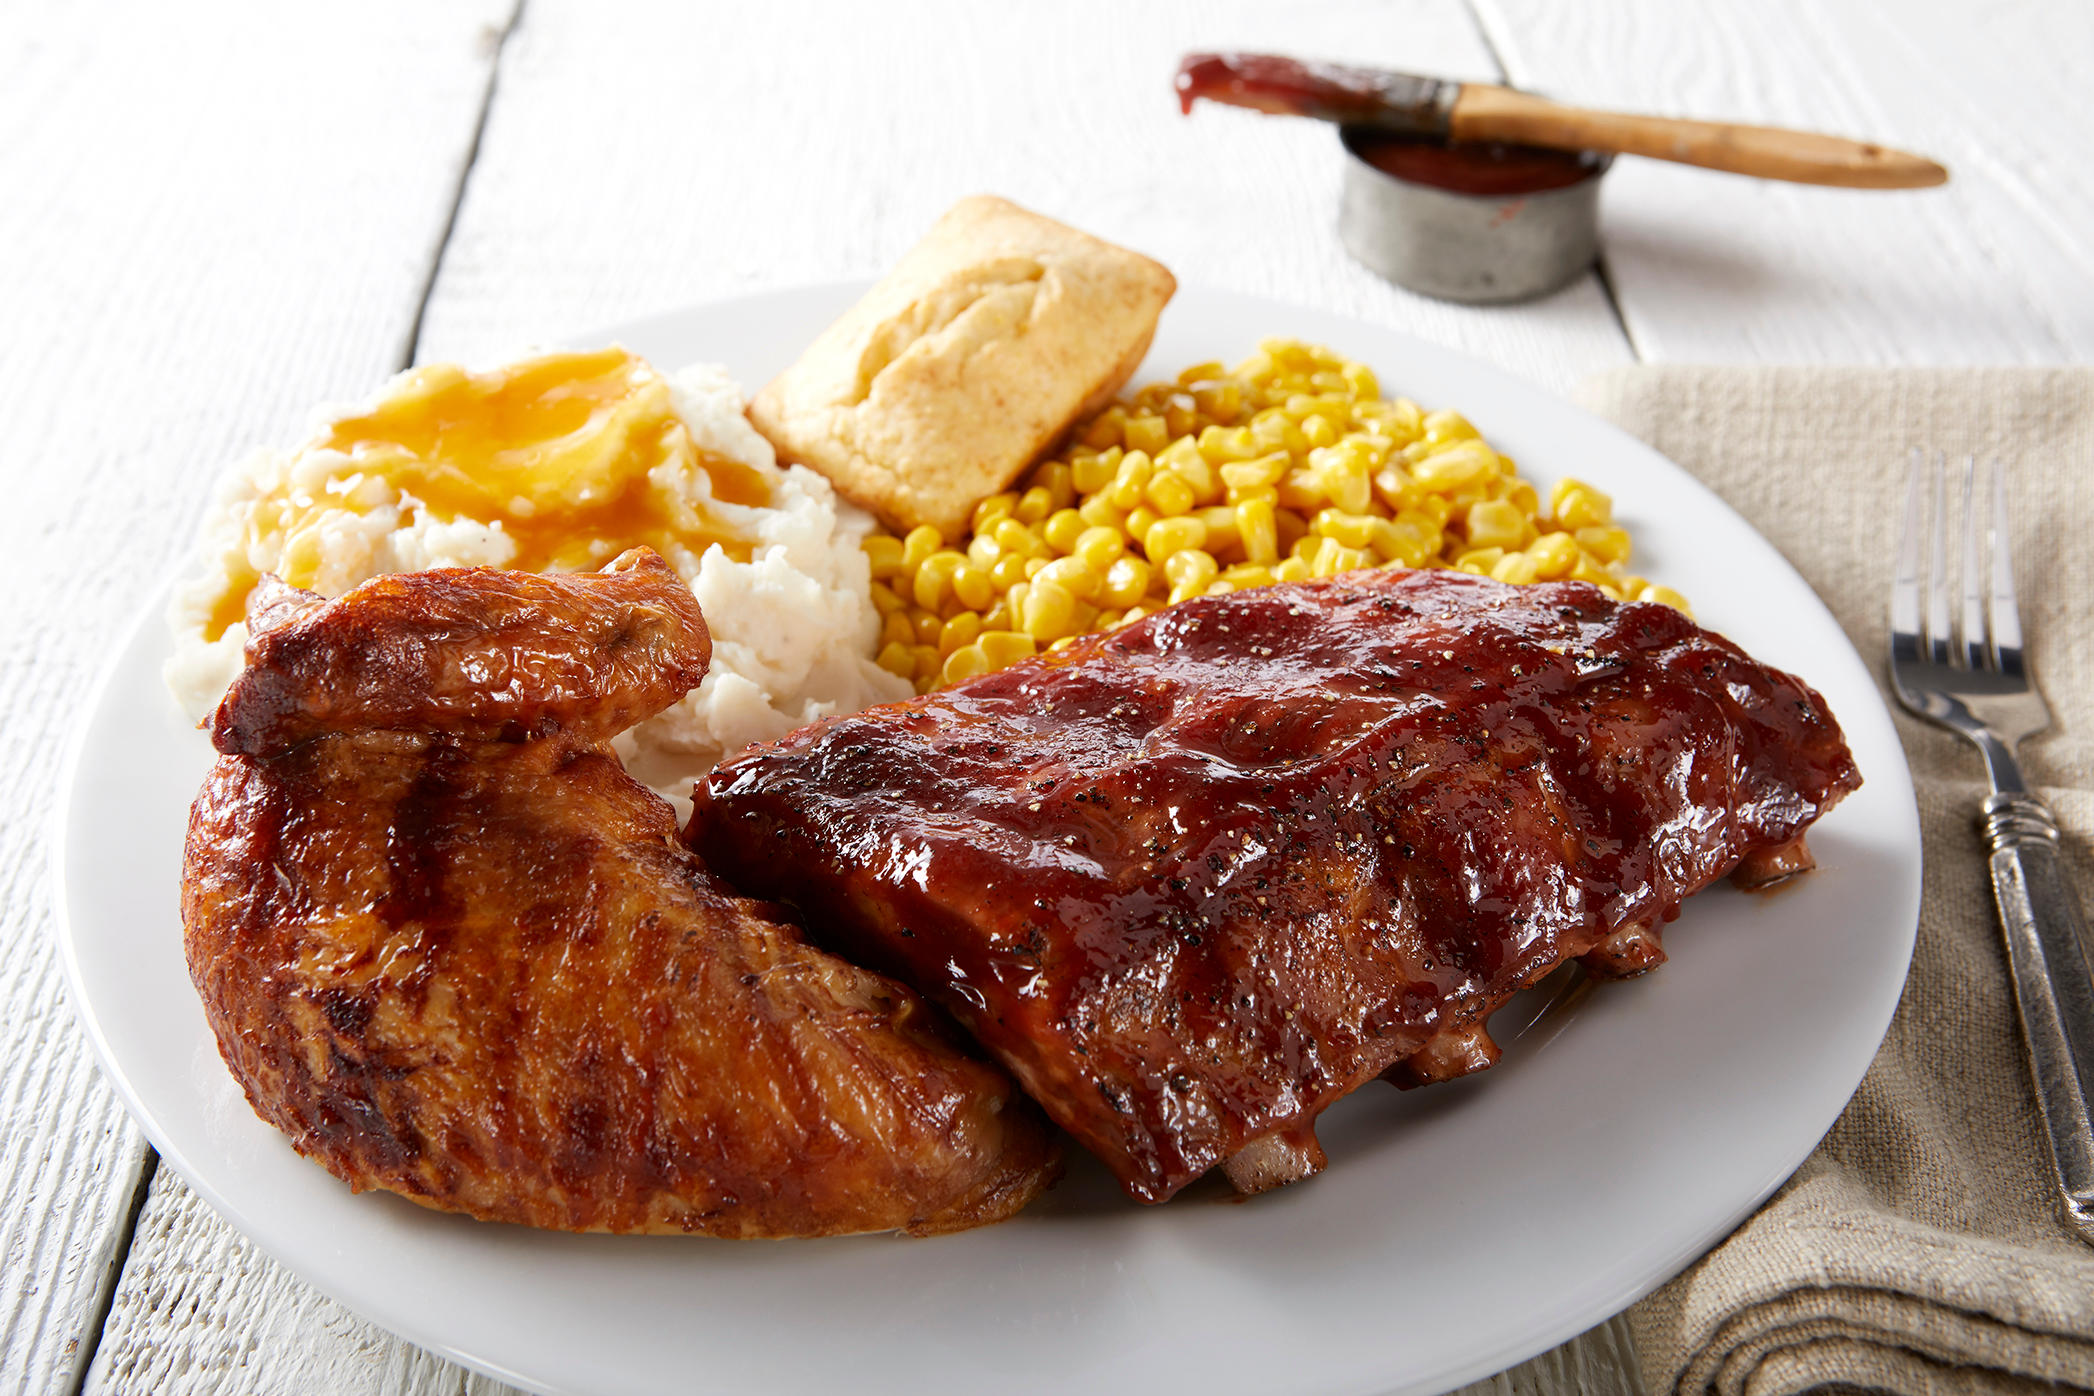 Chicken and Ribs Individual Meal: The best of both worlds.